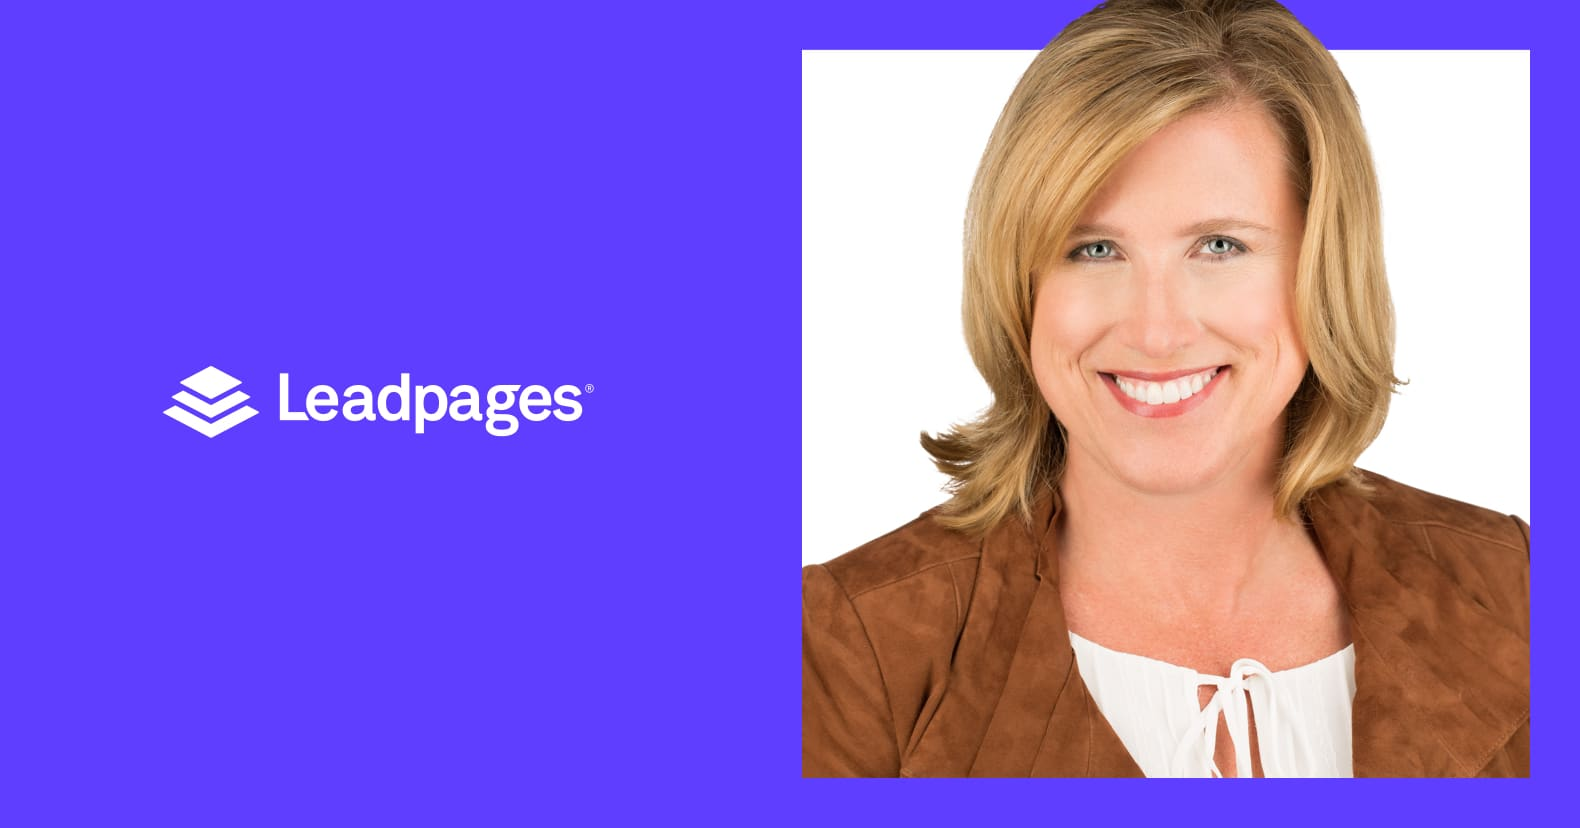 Leadpages Appoints Jeanette Dorazio as CEO